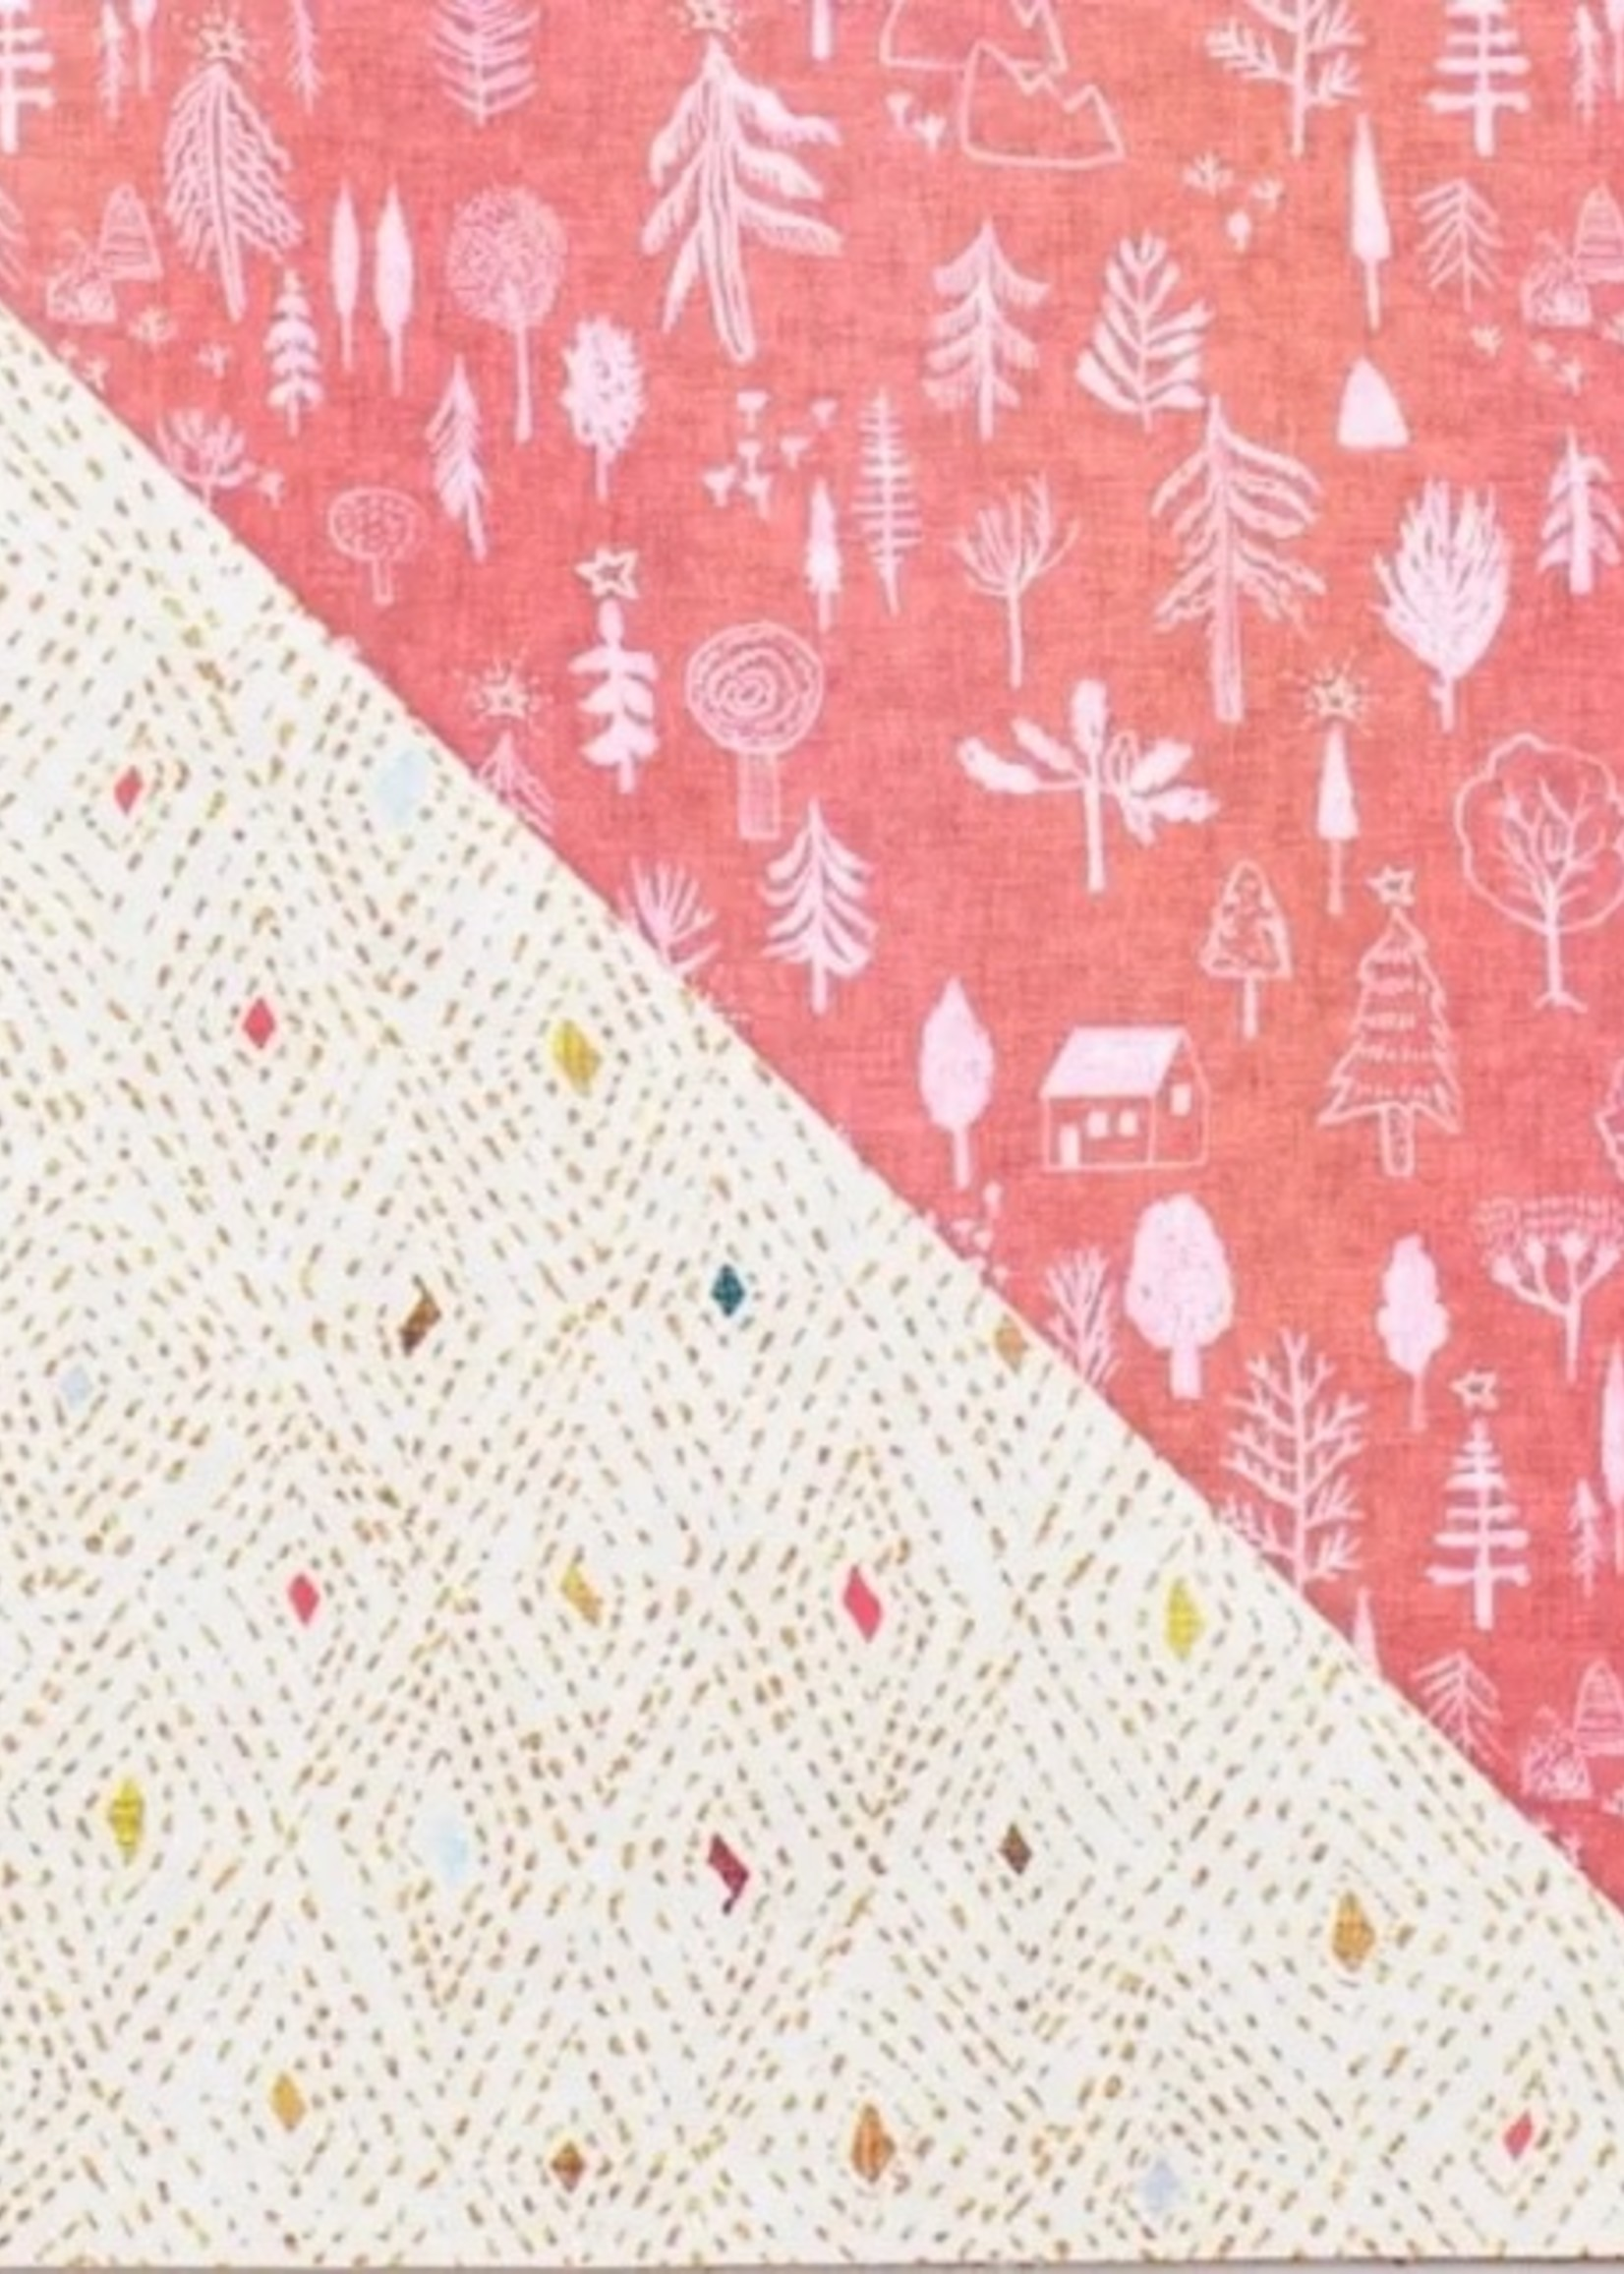 Wrappily Cozy Cabins Wrapping Paper